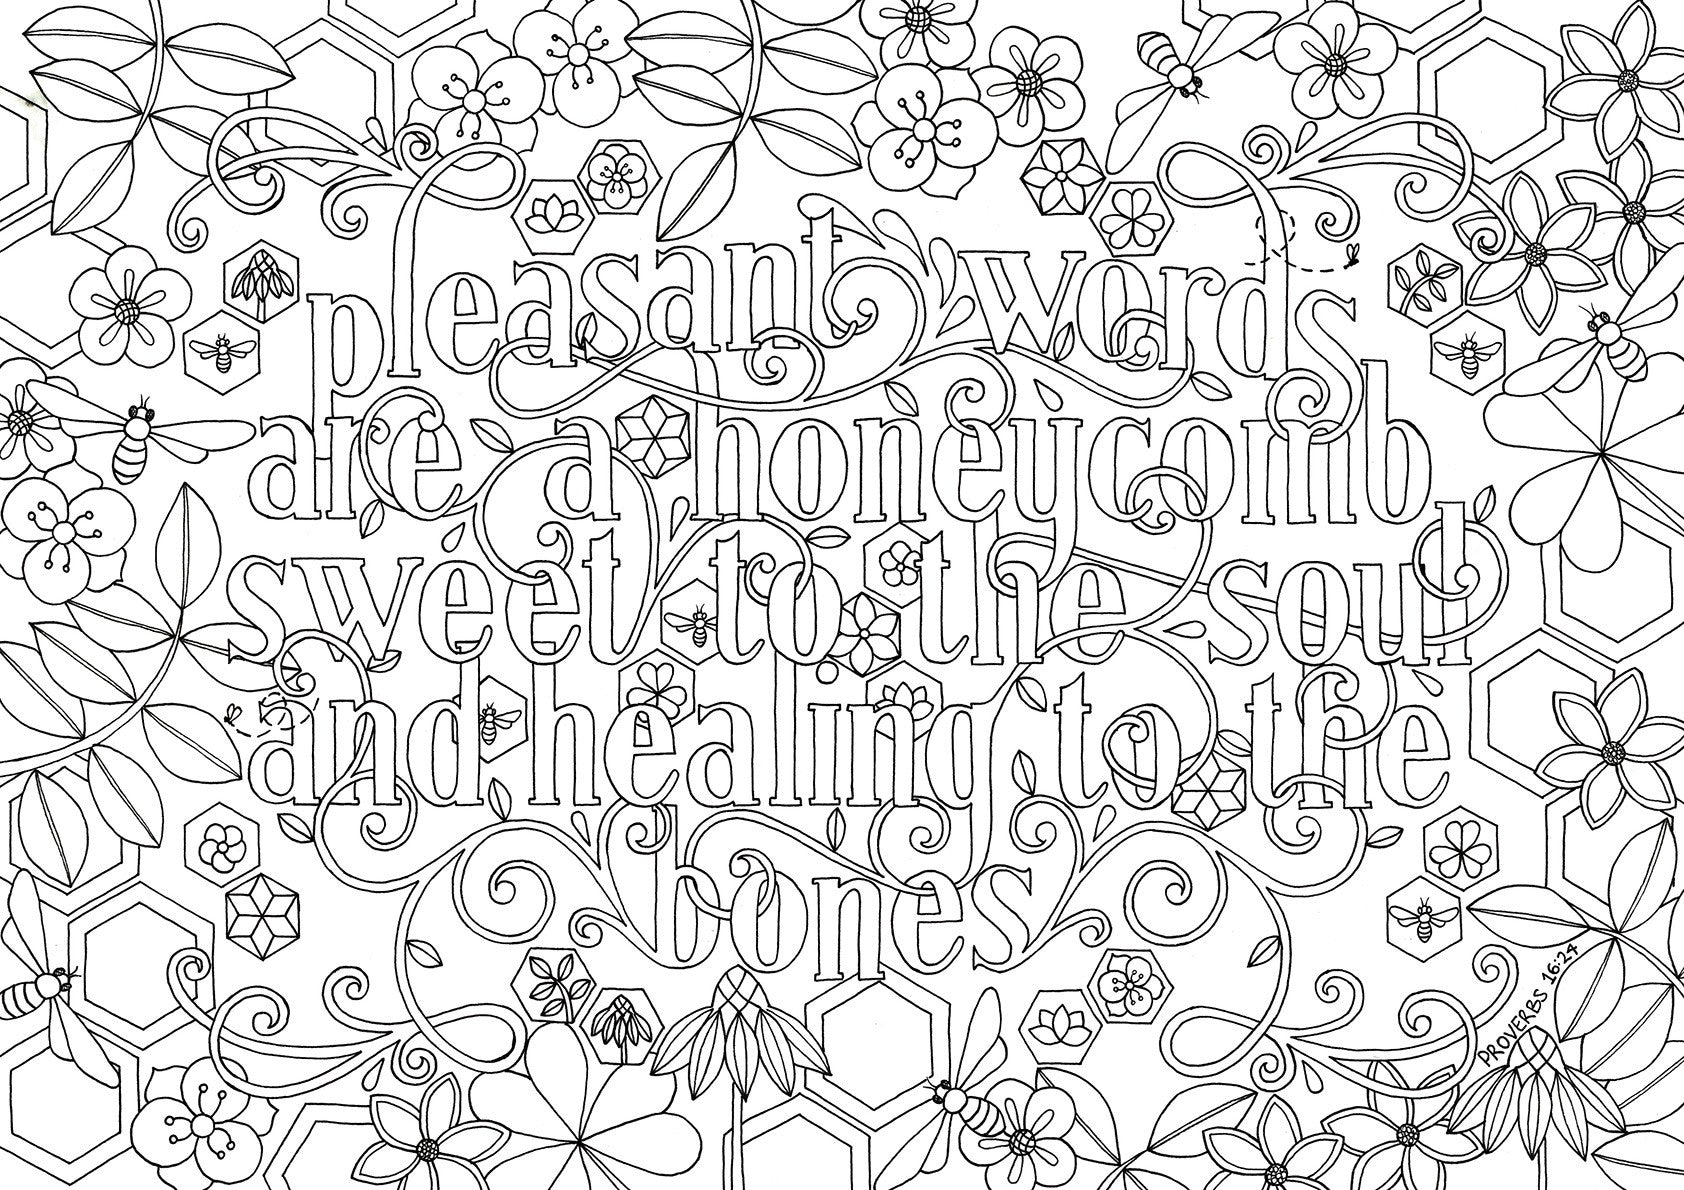 Colouring in Bible Verse Pleasant Words are a Honeycomb Psalm 1